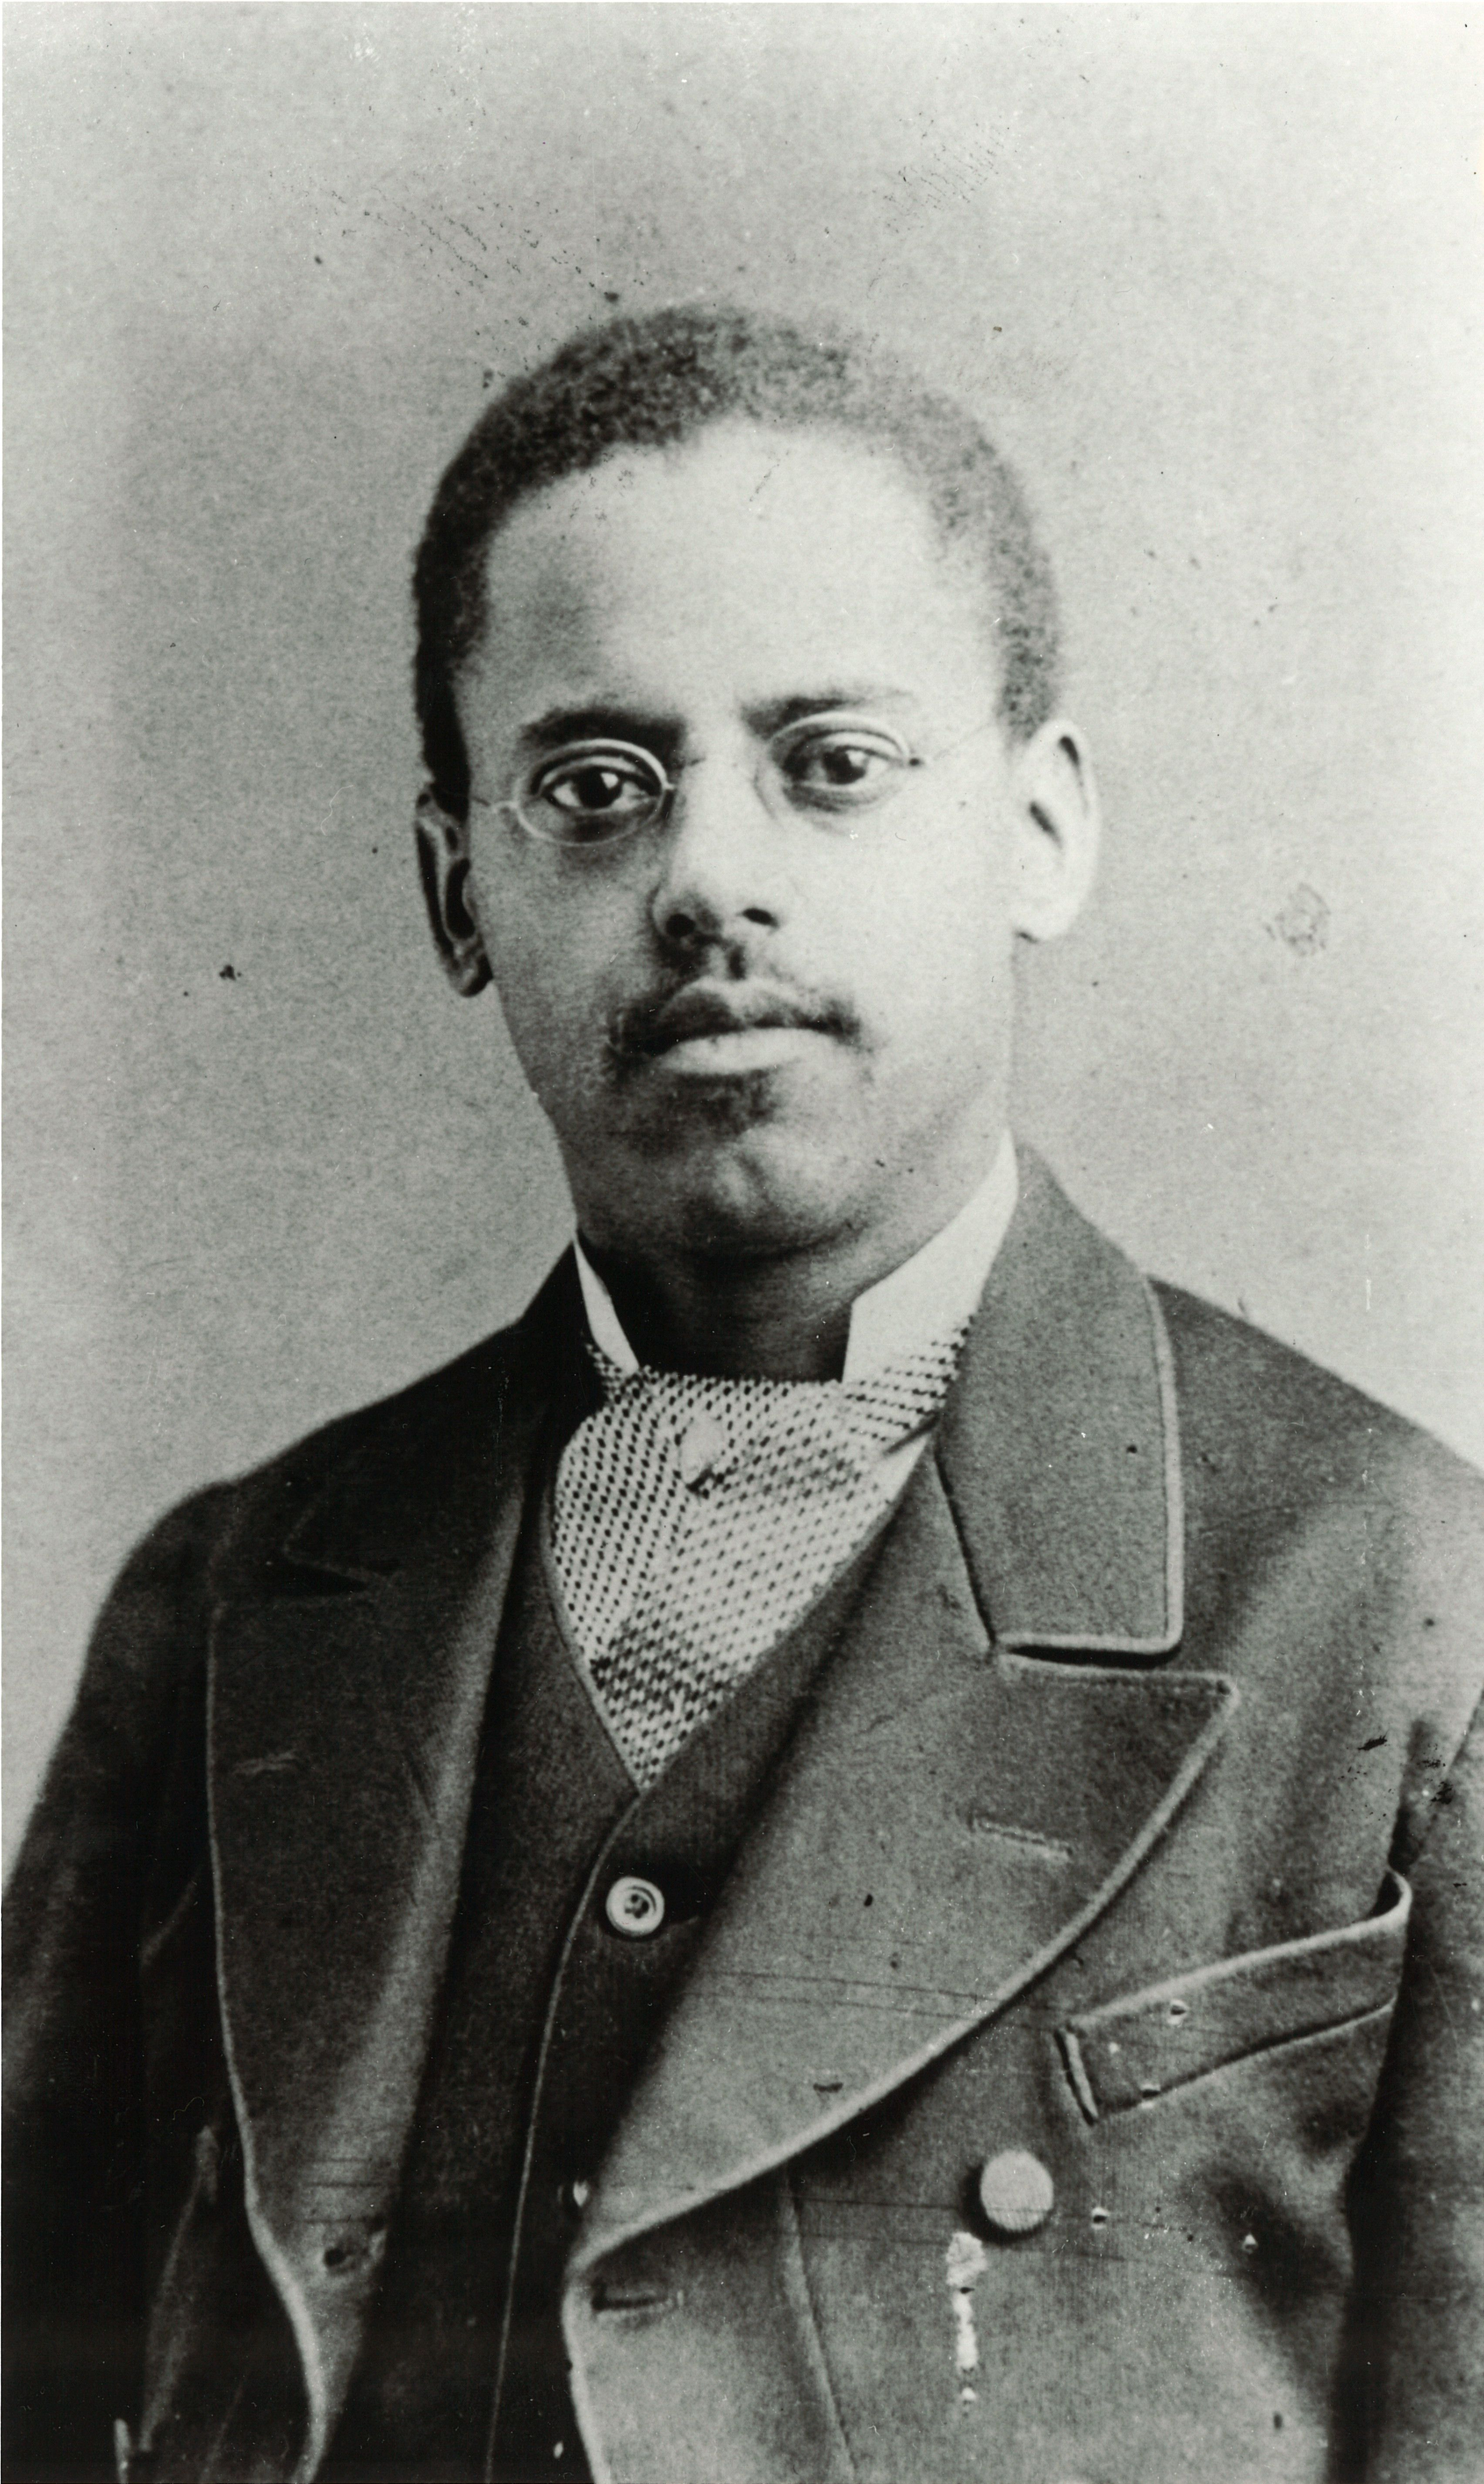 Lewis Latimer Patented A Carbon Filament For The